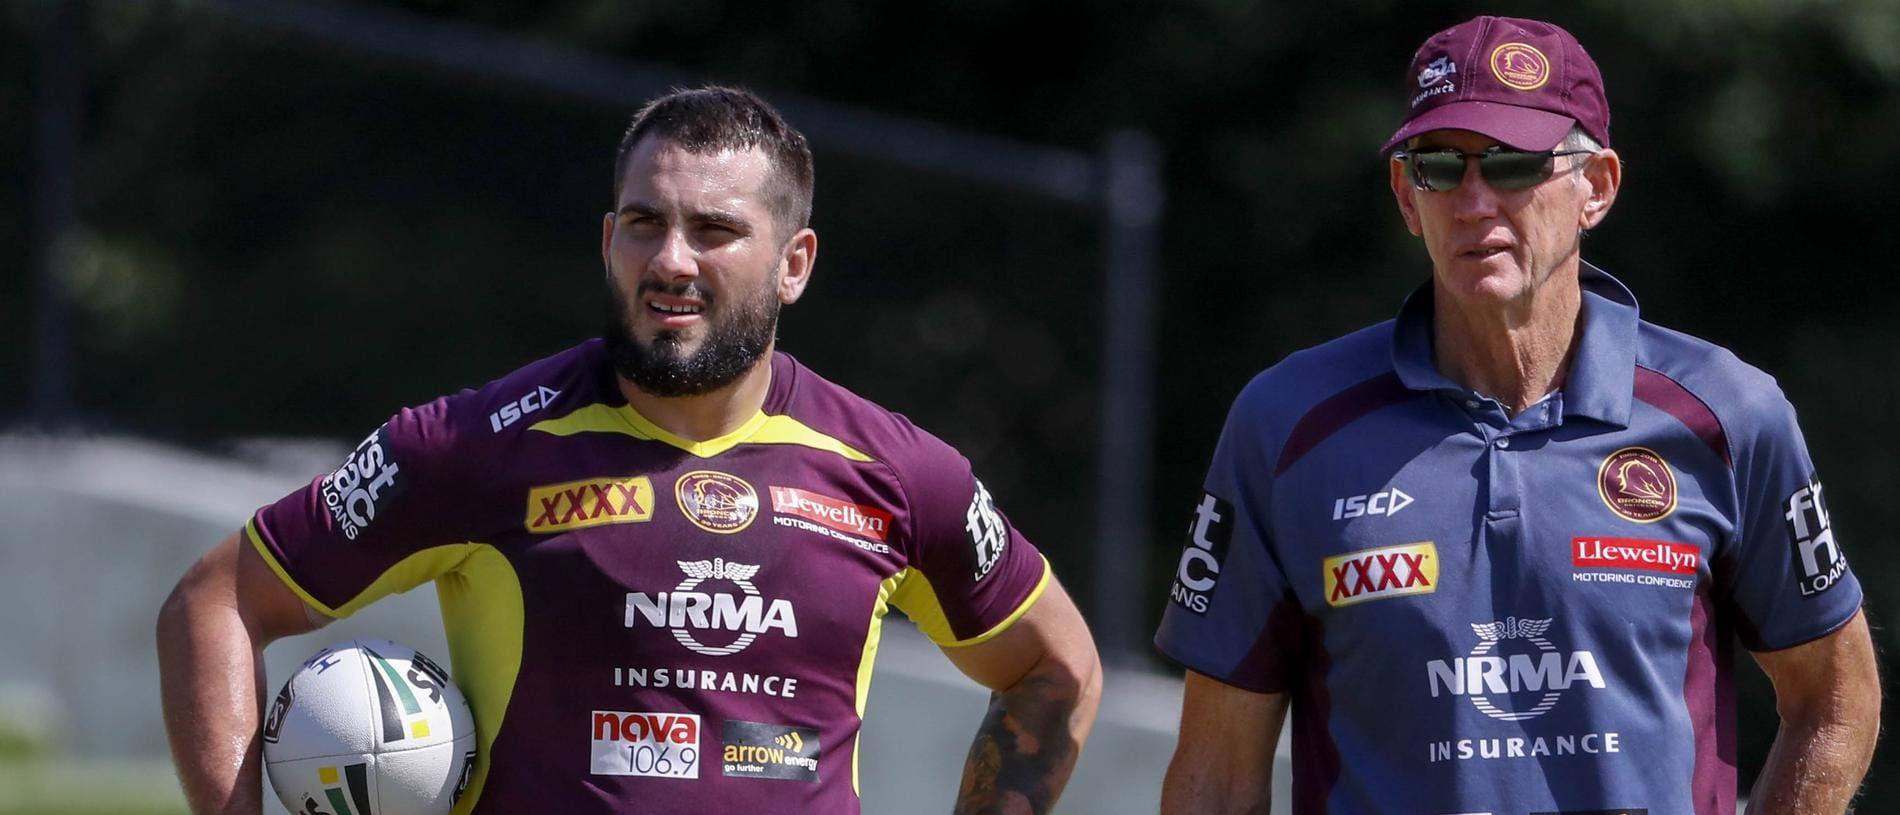 Jack Bird (left) and coach Wayne Bennett (right) at training with the Brisbane Broncos at the Clive Berghofer Centre, Red Hill, Brisbane, Monday, March 12, 2018. (AAP Image/Glenn Hunt) NO ARCHIVING, EDITORIAL USE ONLY